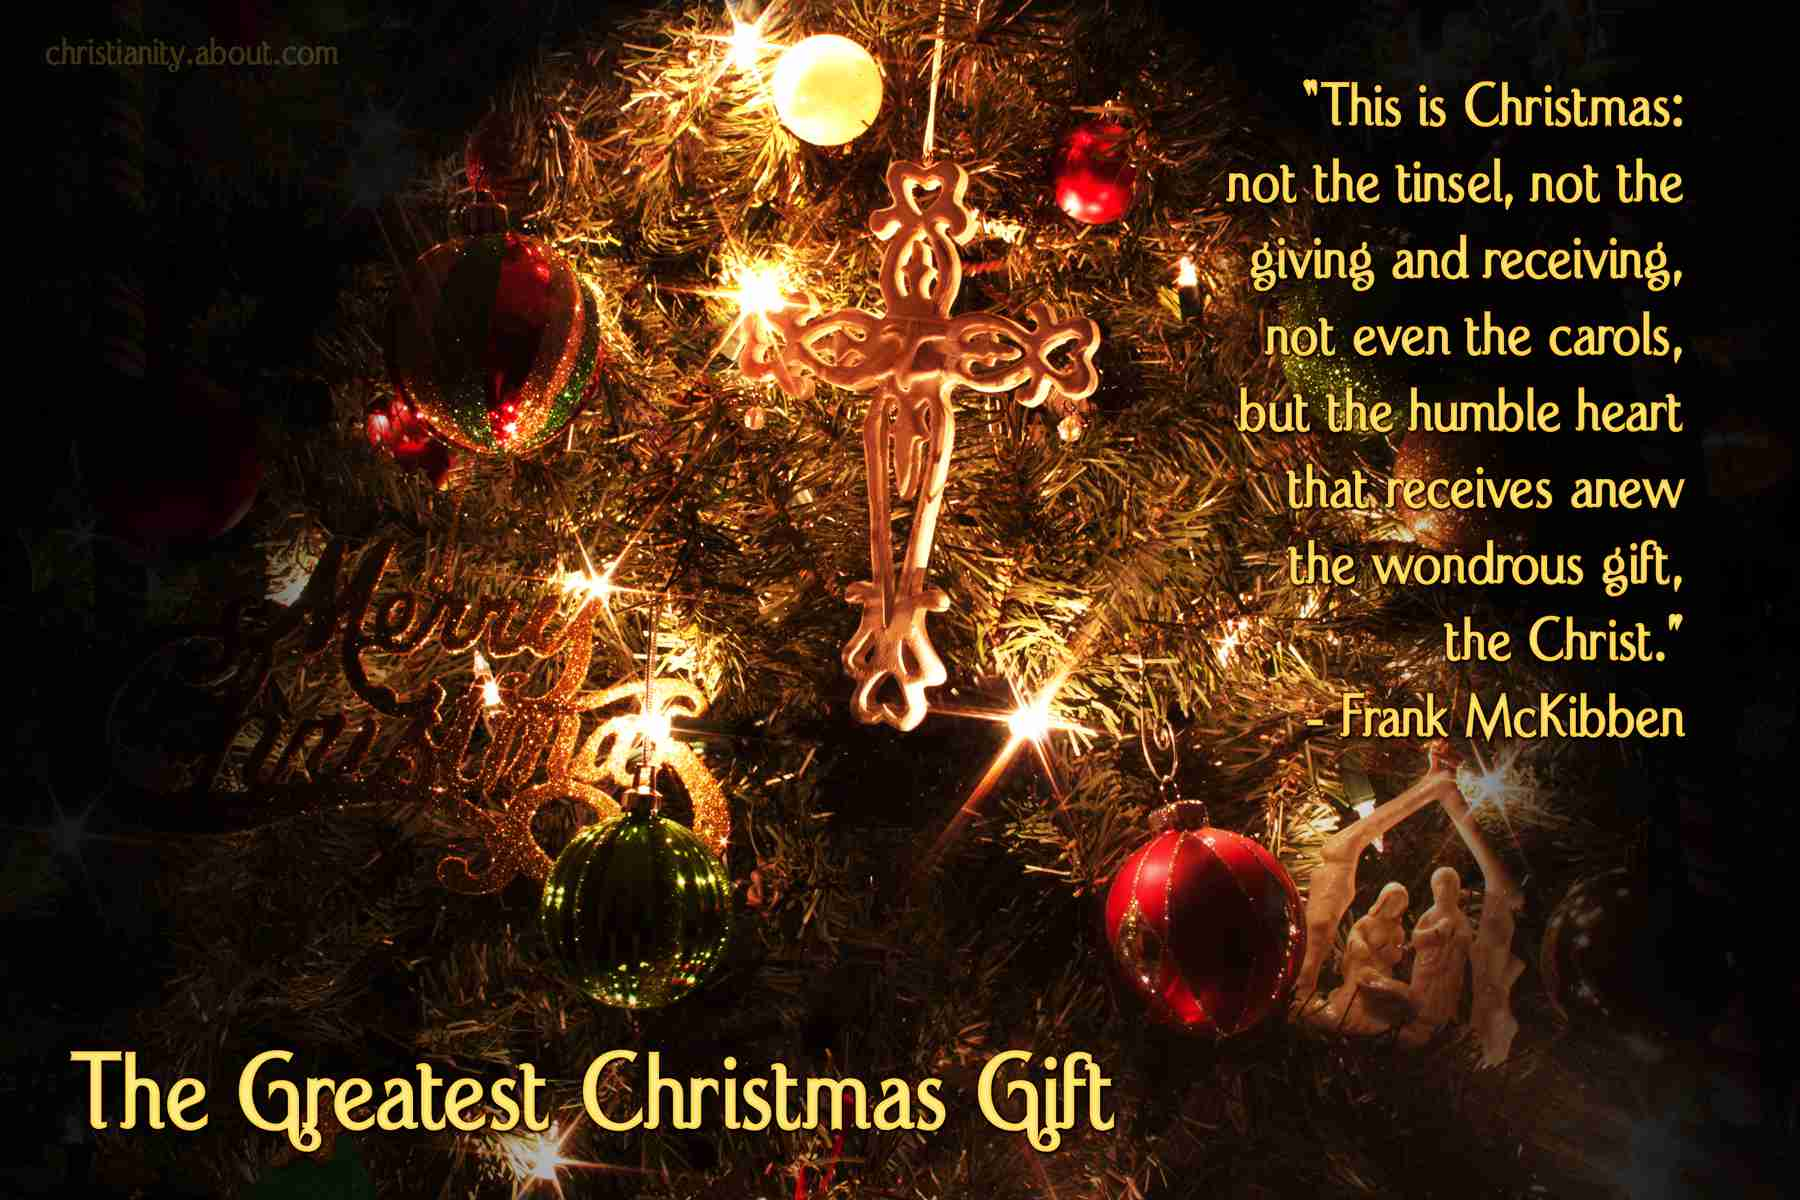 jesus christ is the greatest gift - Christmas Devotional Stories